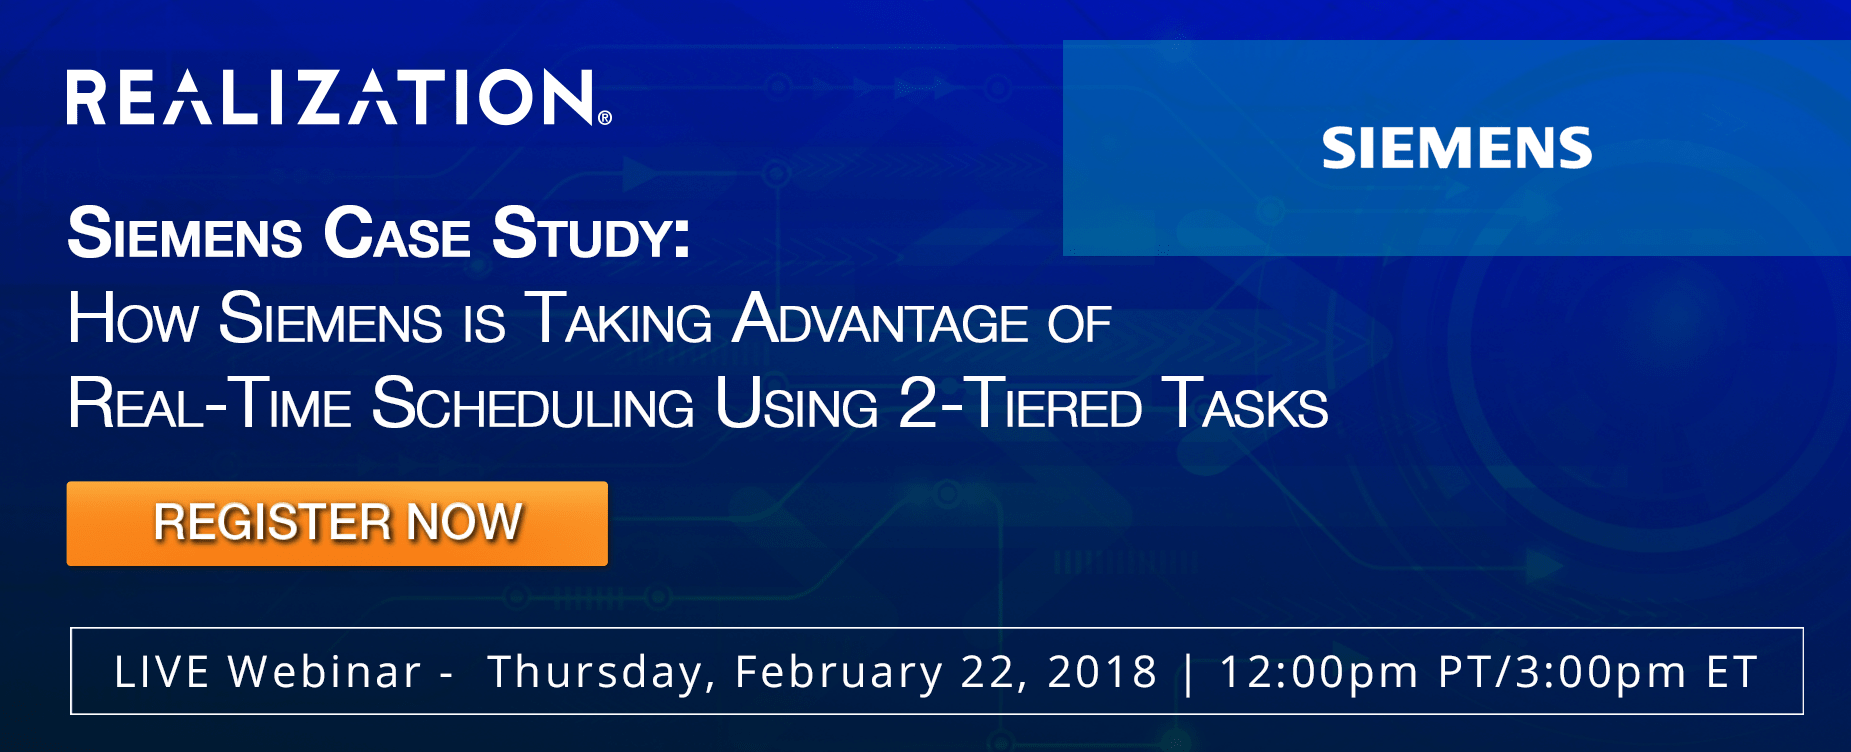 [Webinar] Siemens Case Study: How Siemens is Taking Advantage of Real-Time Scheduling Using 2-Tiered Tasks